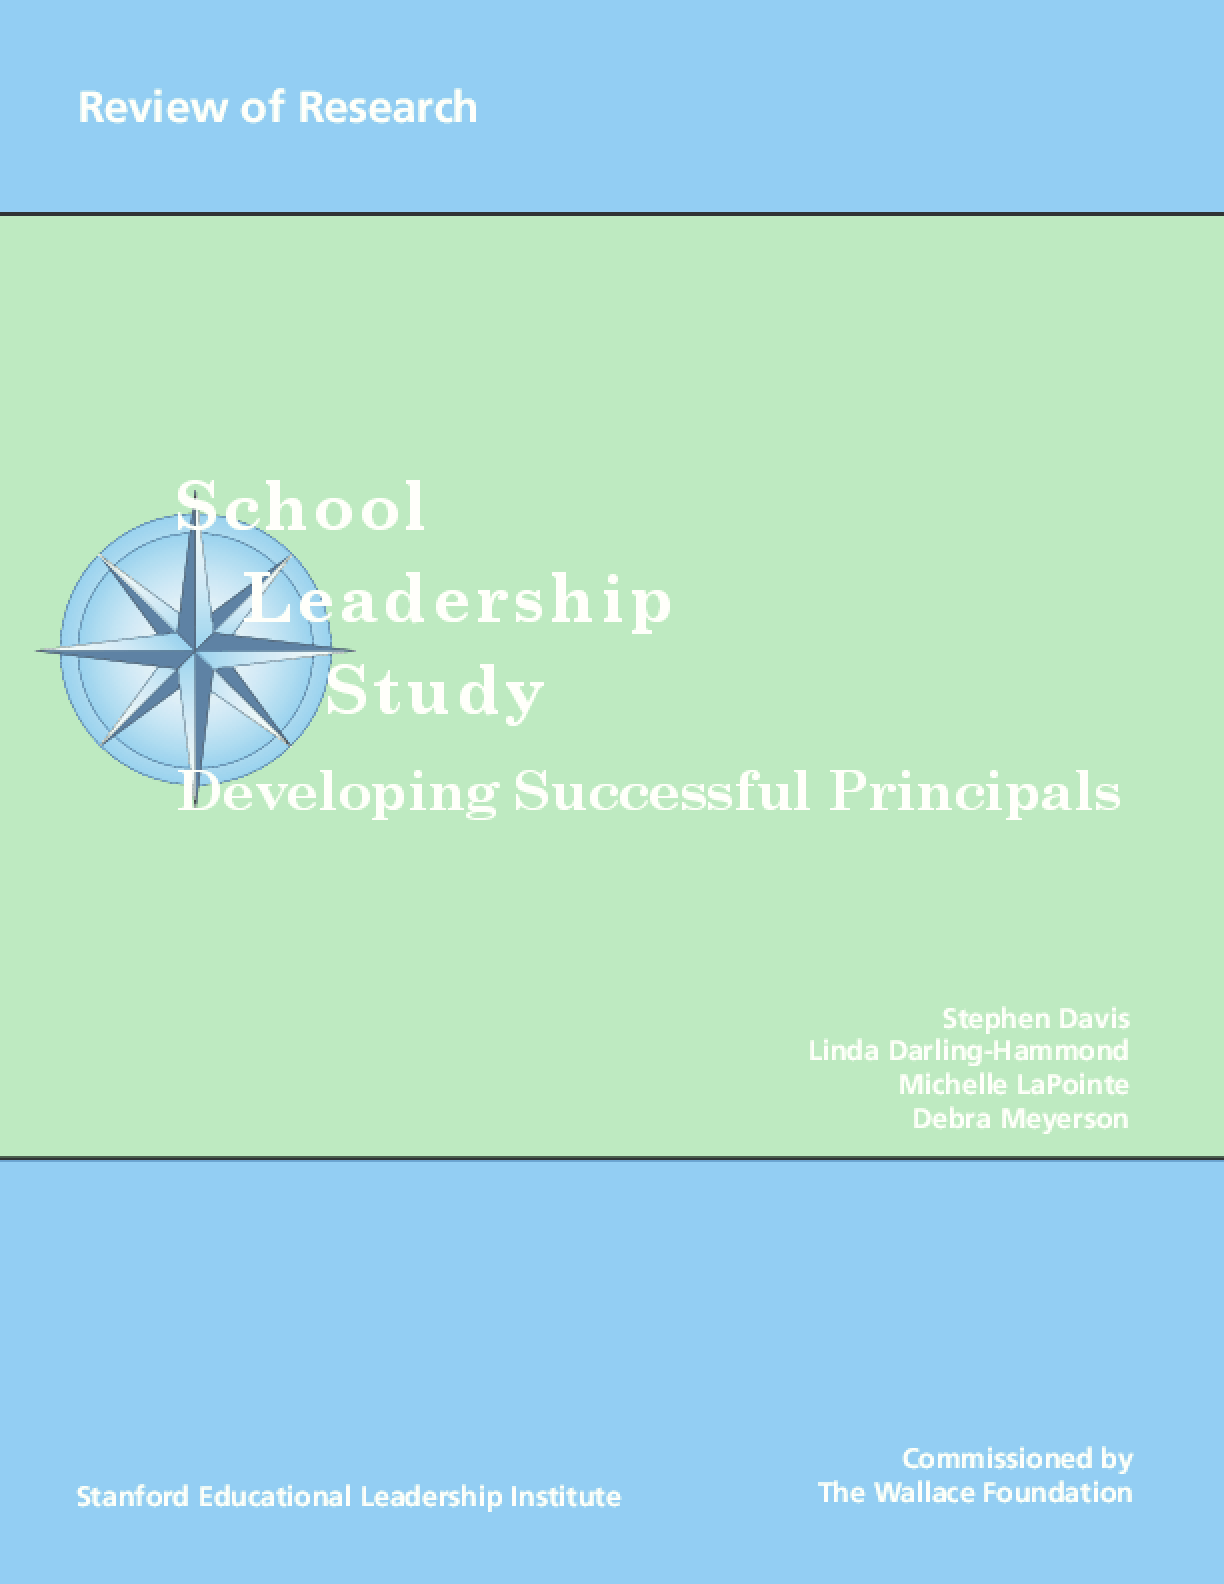 Developing Successful Principals: Review of Research